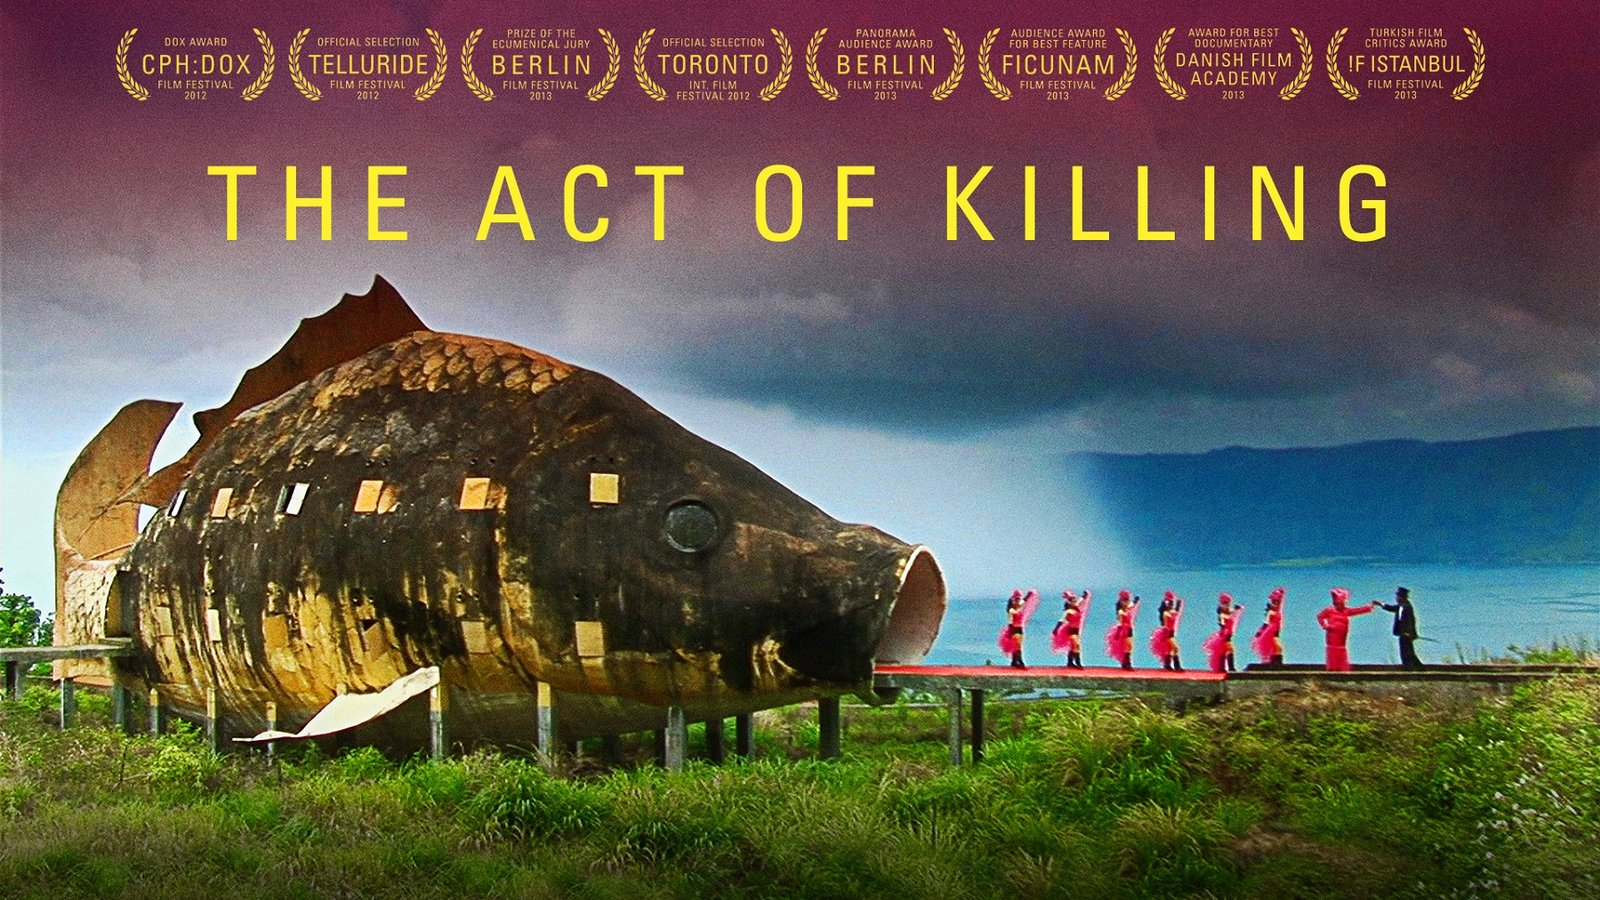 The Act Of Killing - Members of an Indonesian Death Squad Re-enact Their Deeds